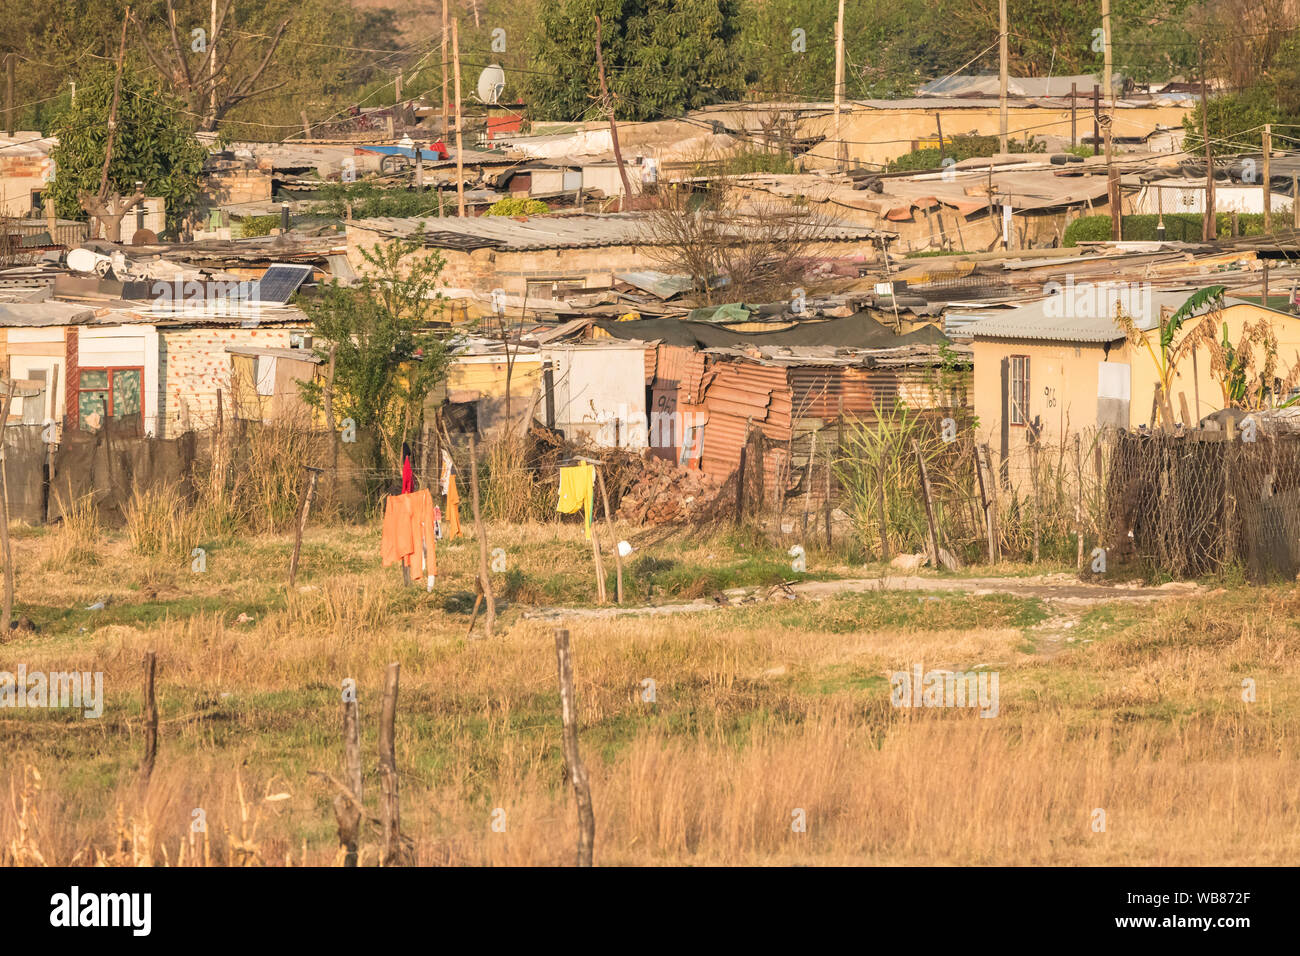 shanty town, tin shacks, black African township and area of poverty and hardship in Diepsloot outside Johannesburg,Gauteng, South Africa Stock Photo